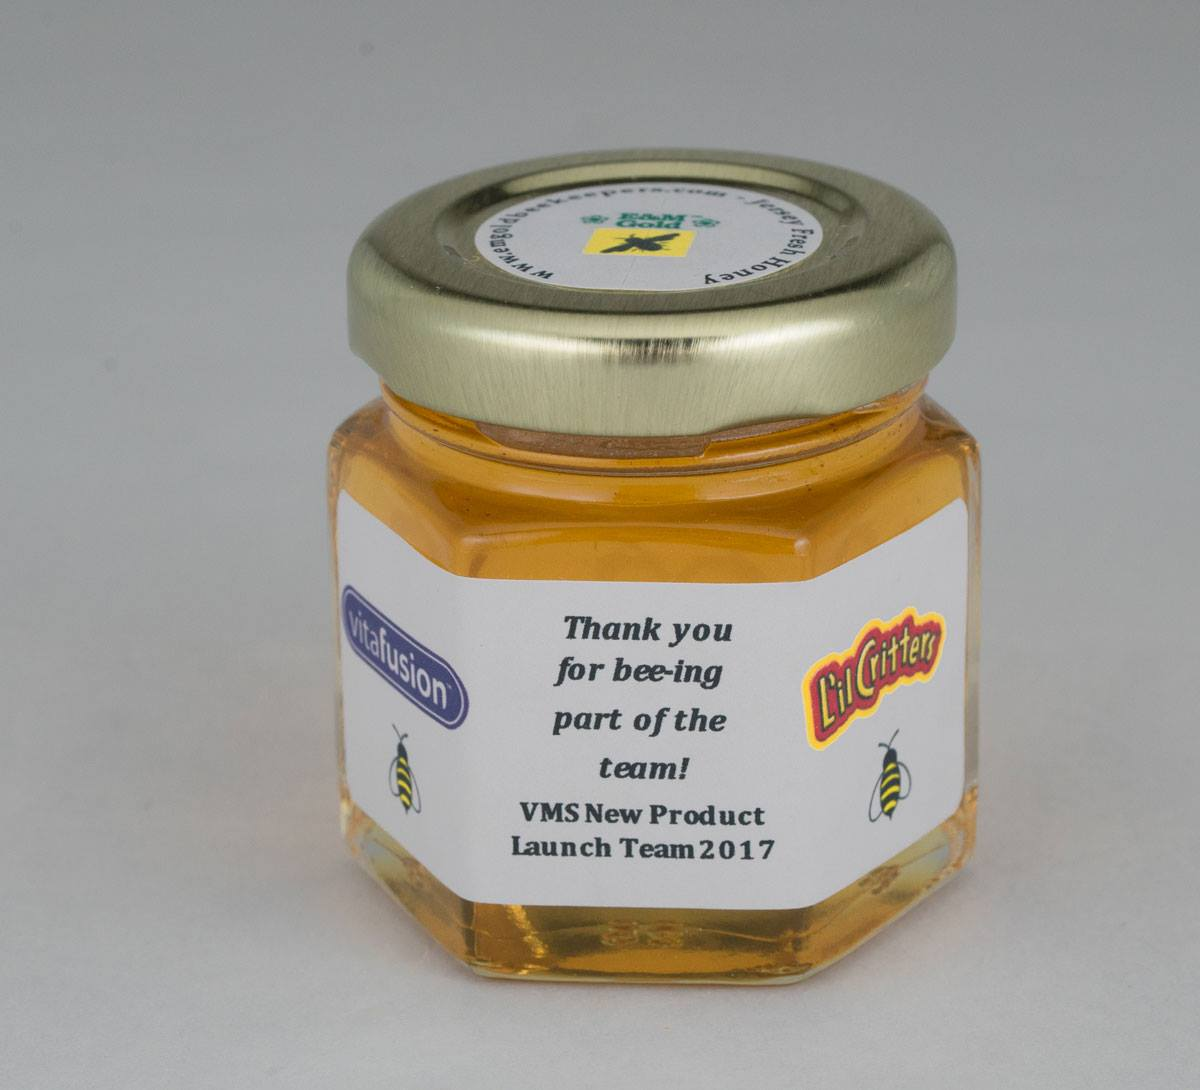 Personalized 2oz. corporate honey favor business gift idea